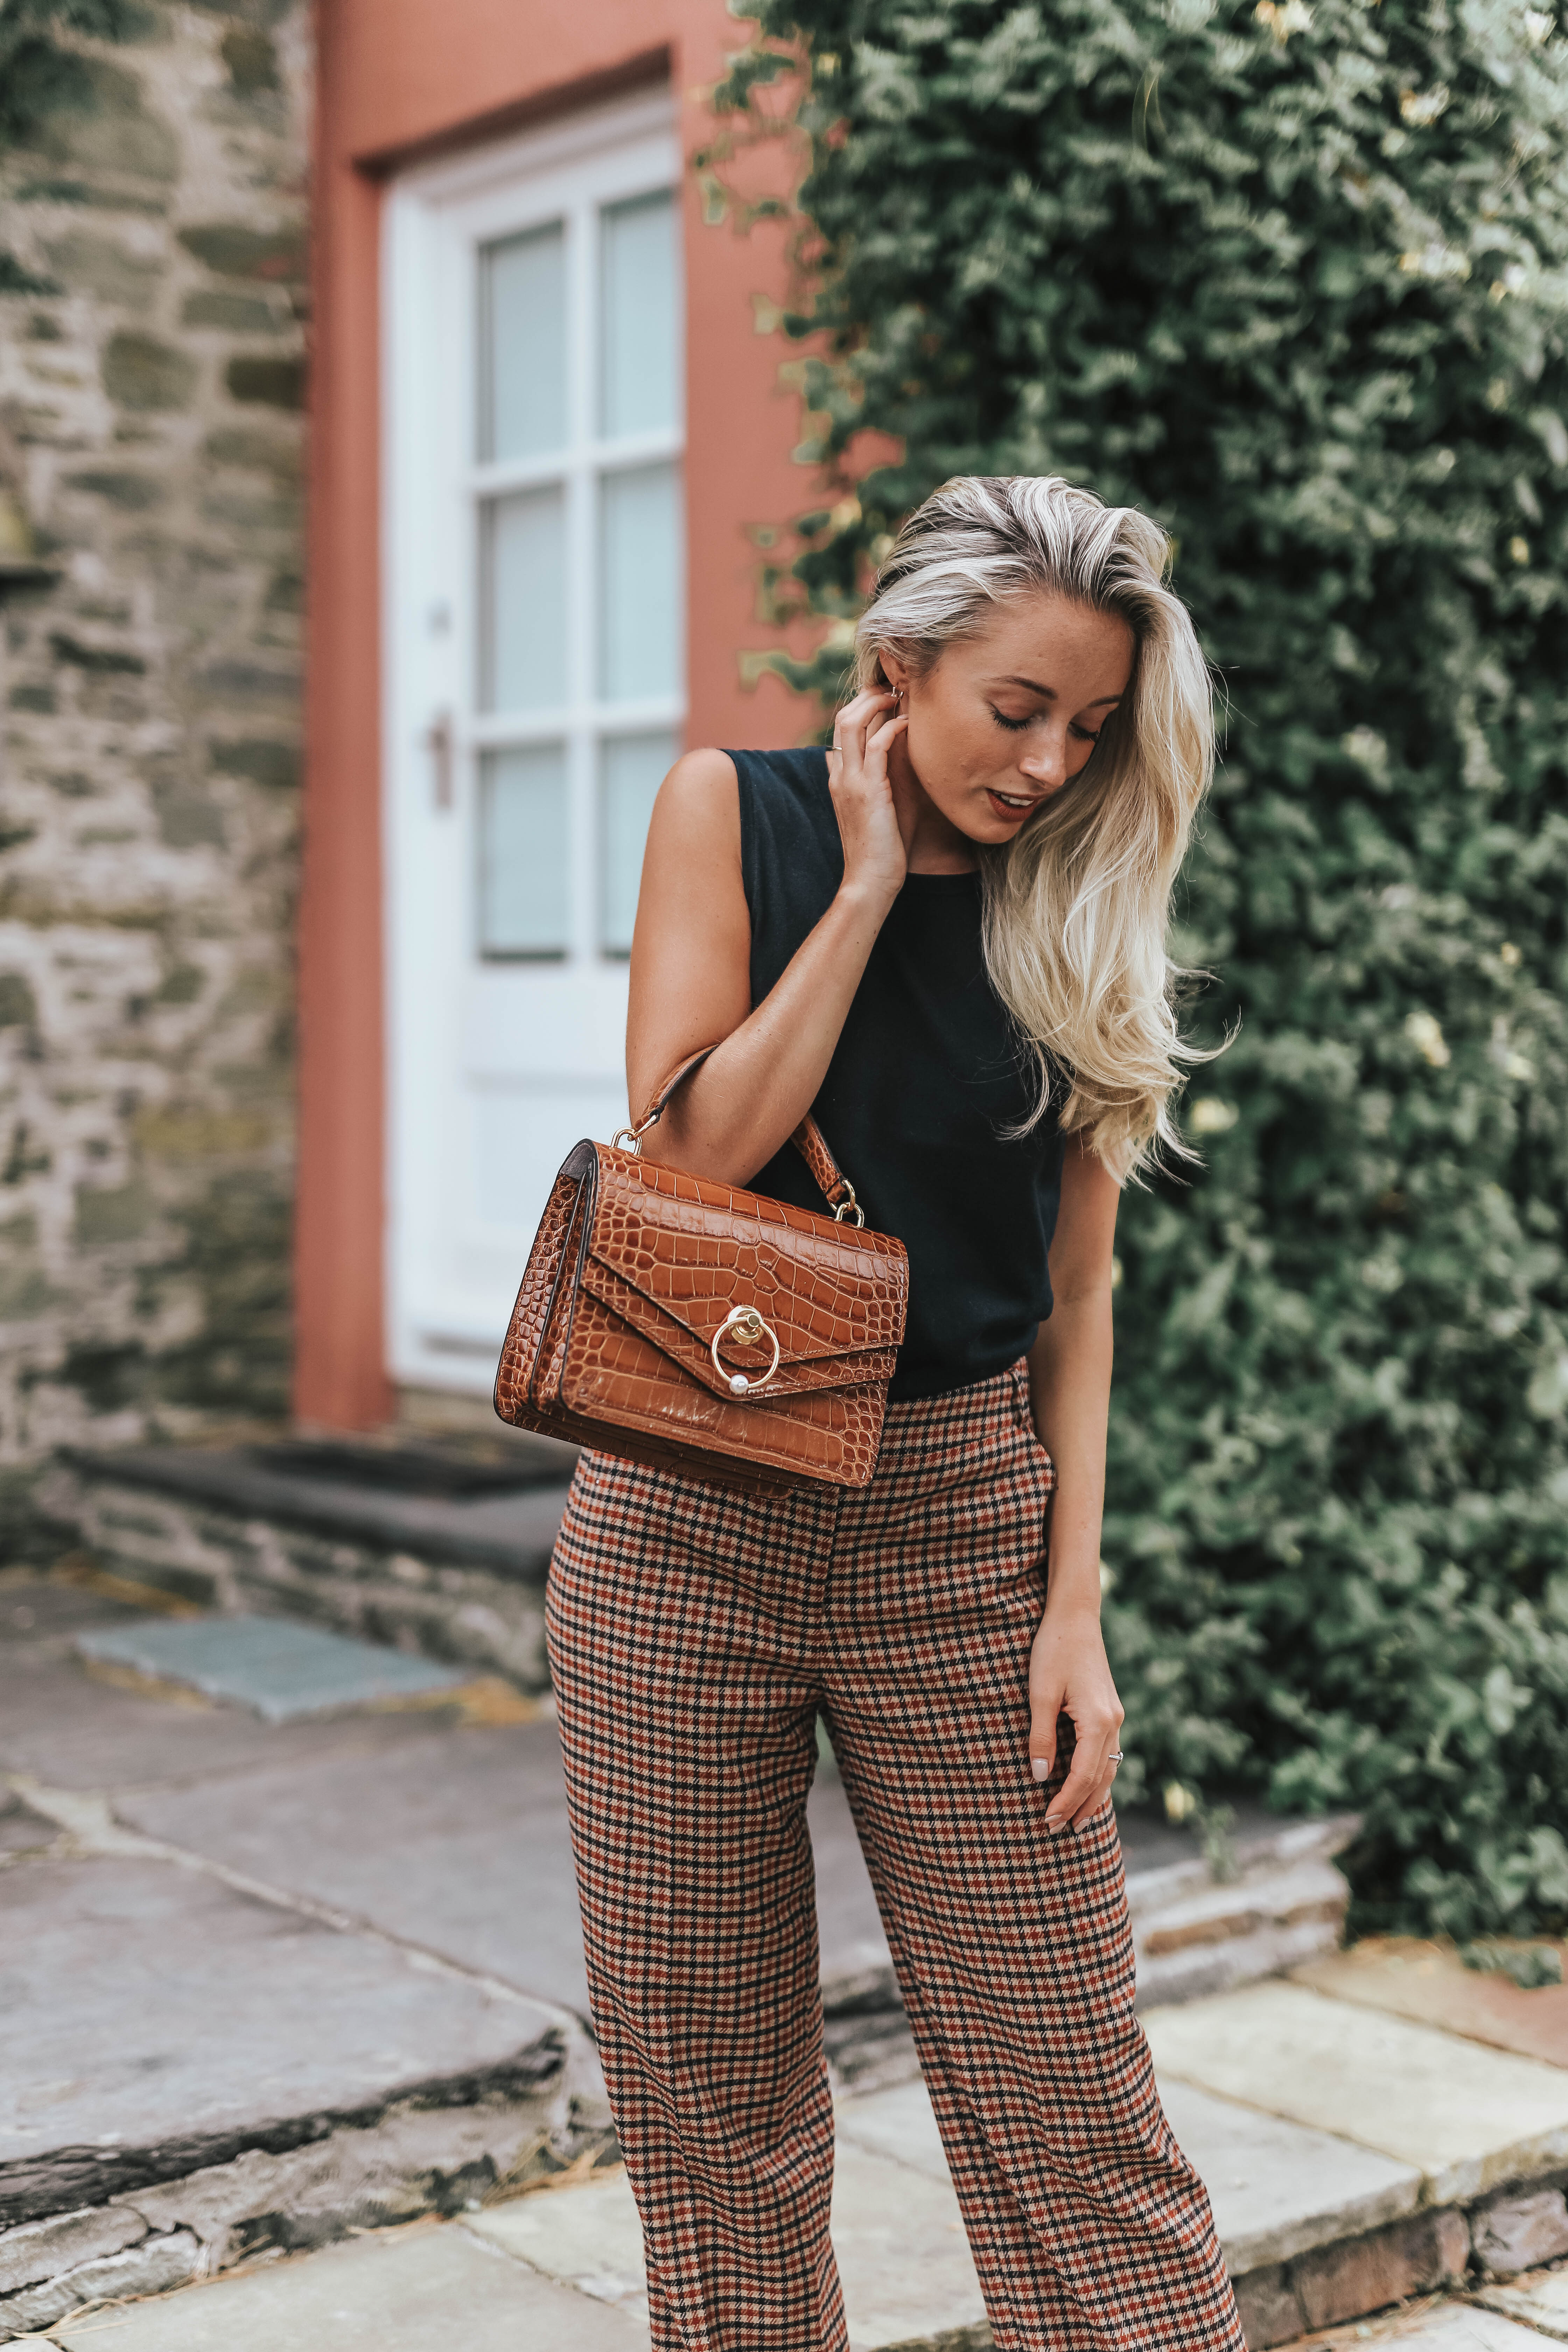 How To Update Your Work Wardrobe For Autumn